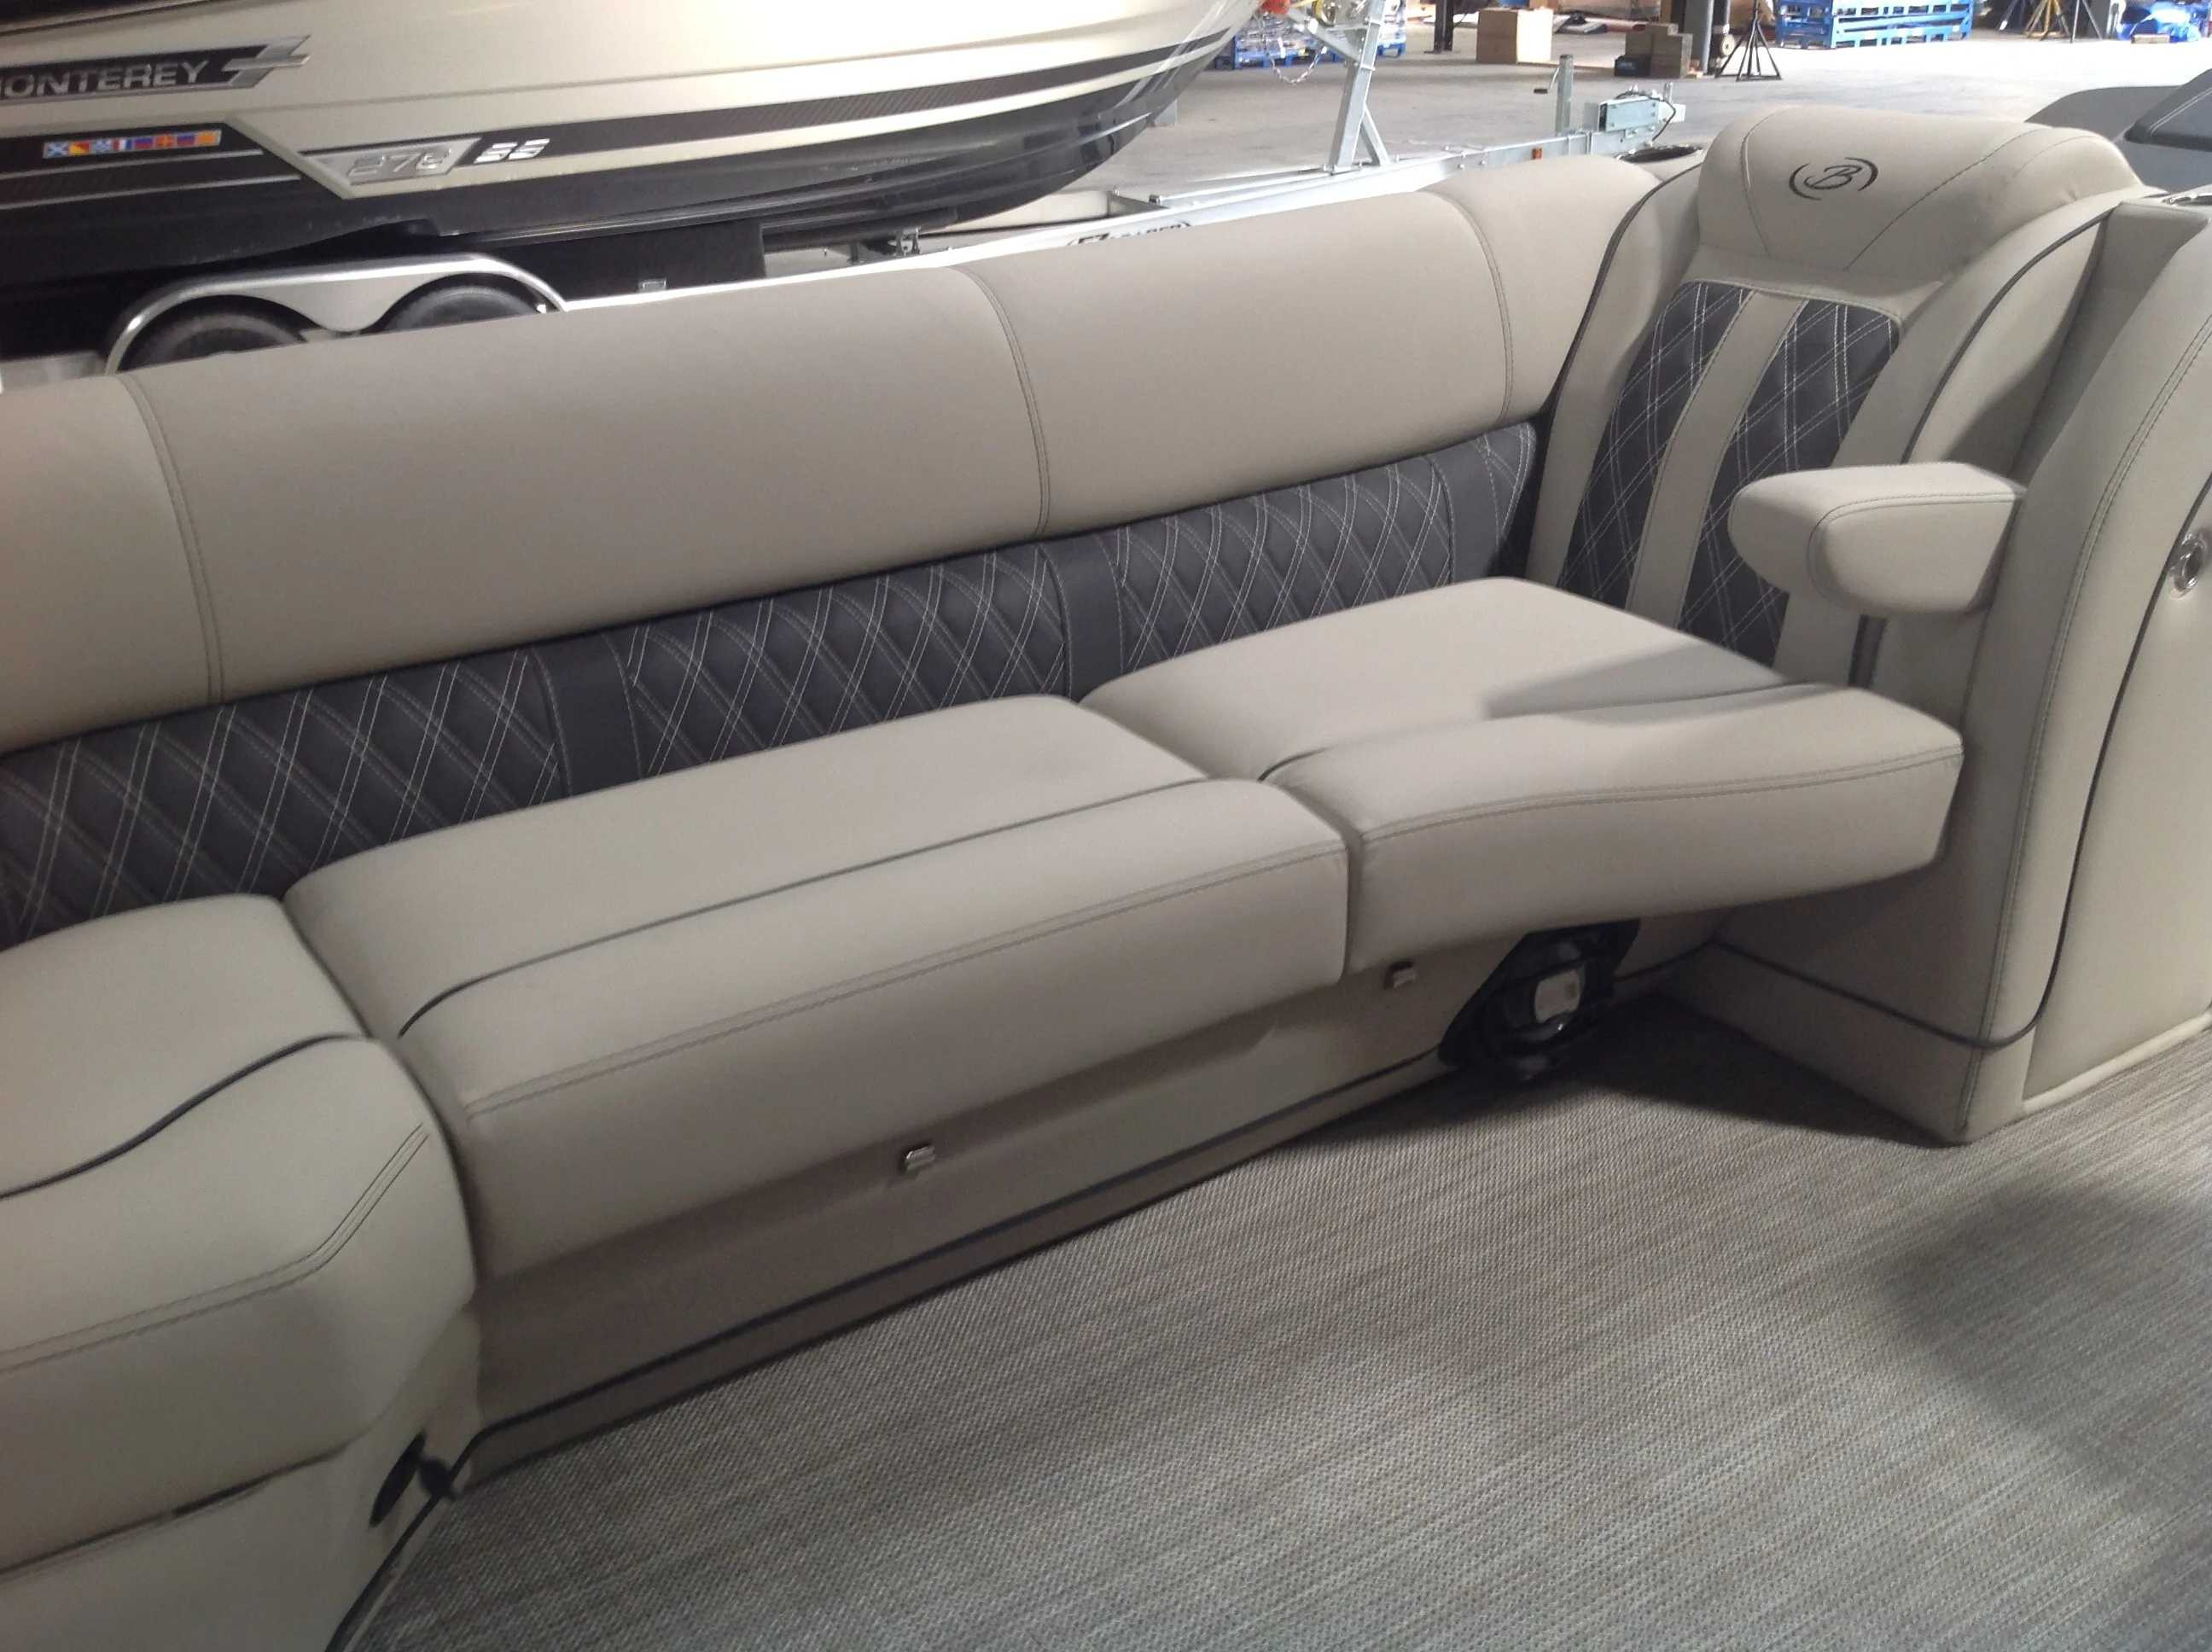 2021 Barletta boat for sale, model of the boat is L25UC & Image # 5 of 17